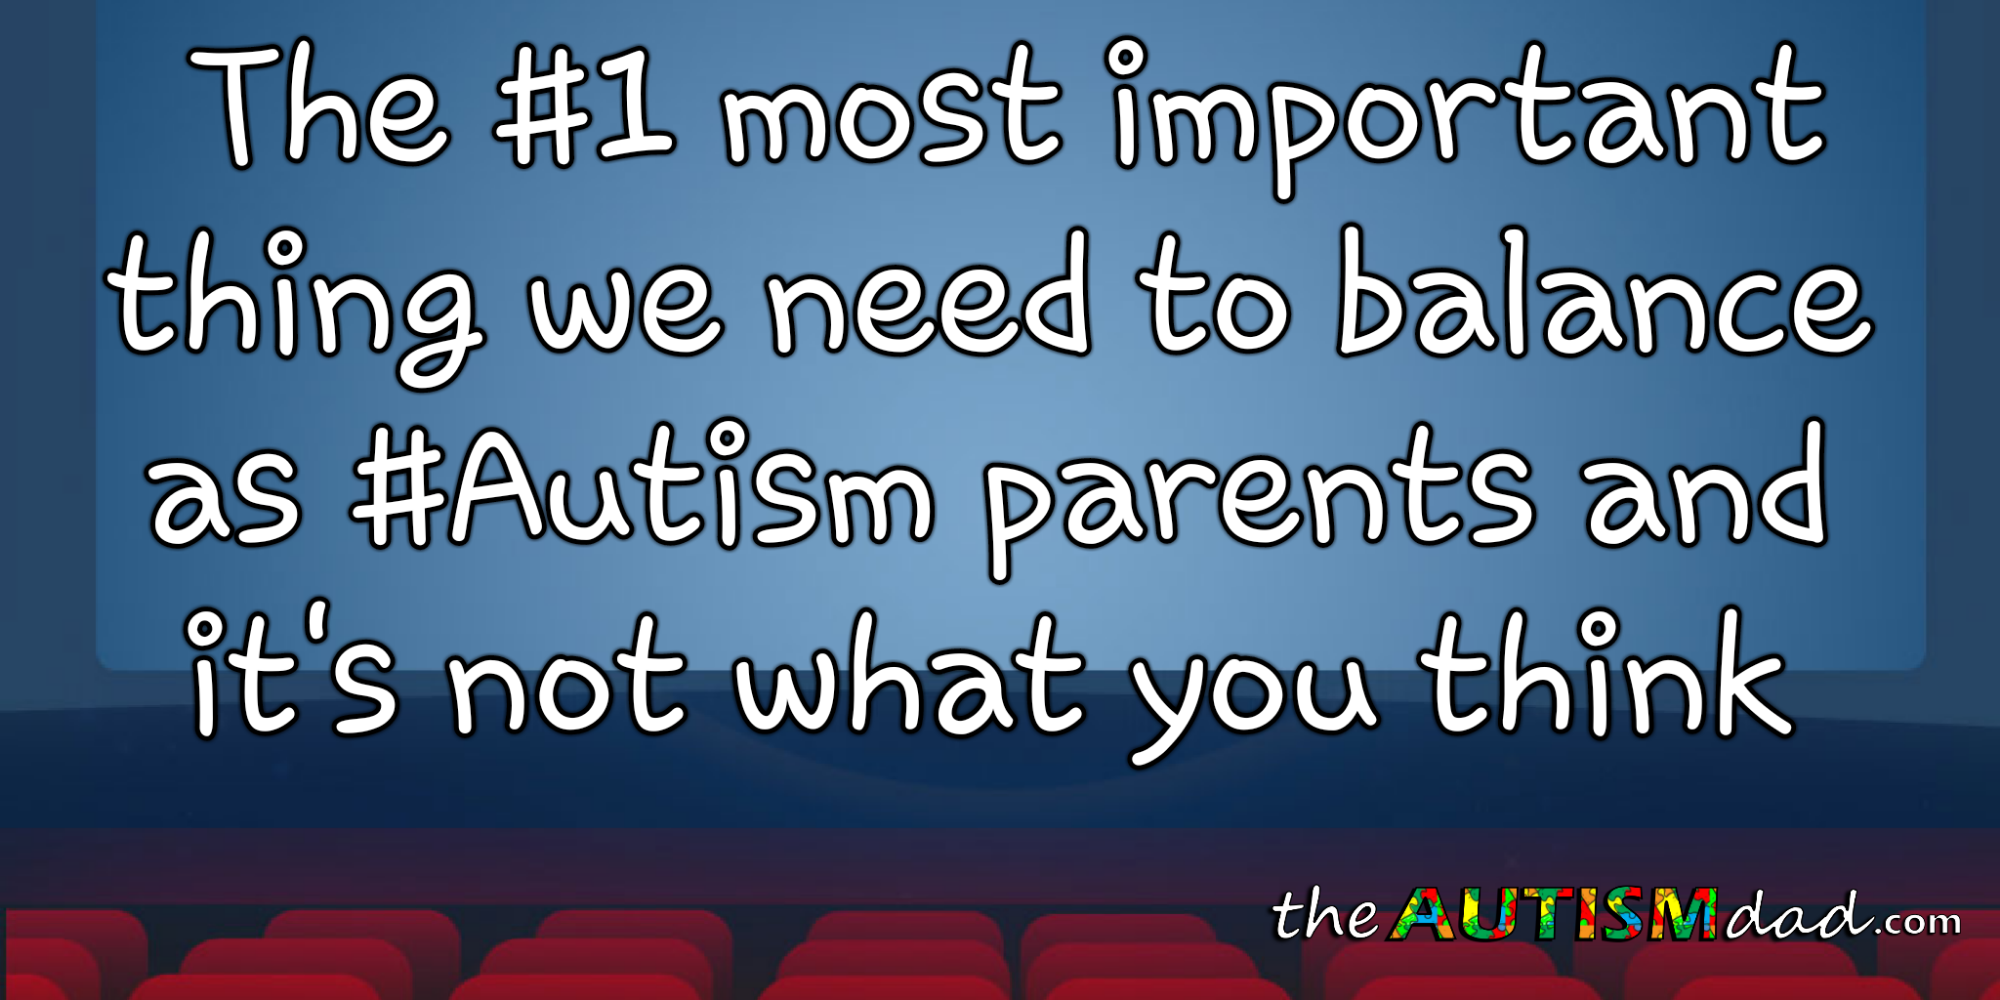 The #1 most important thing we need to balance as #Autism parents and it's not what you think